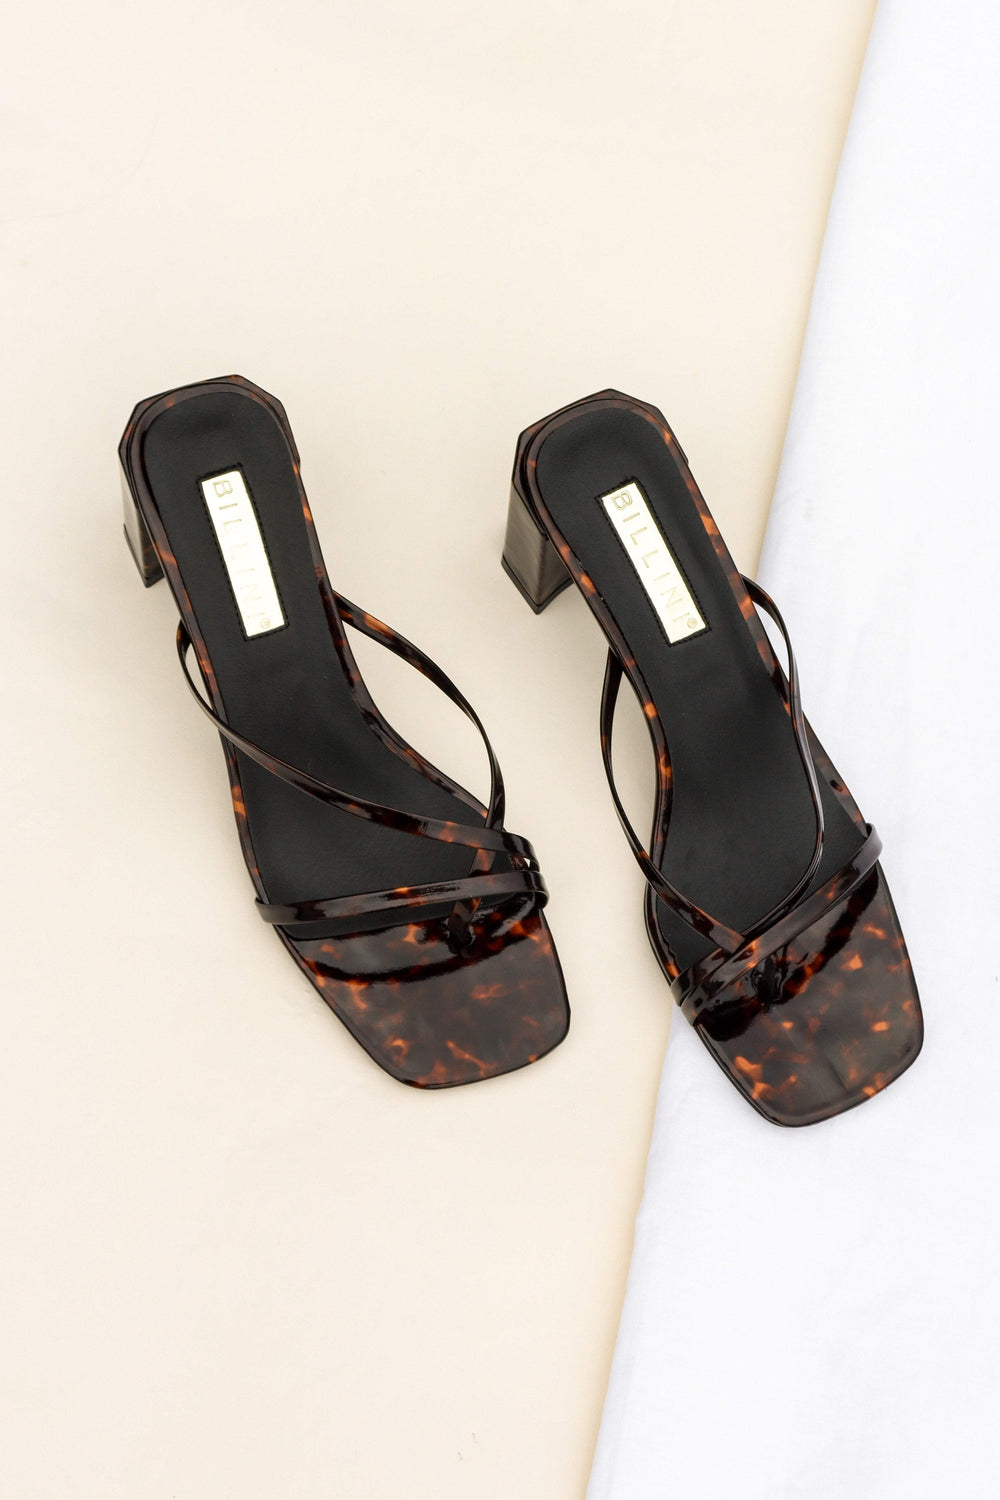 SHOES ***Lotta Heel - Tortoiseshell (DESCRIPTION)